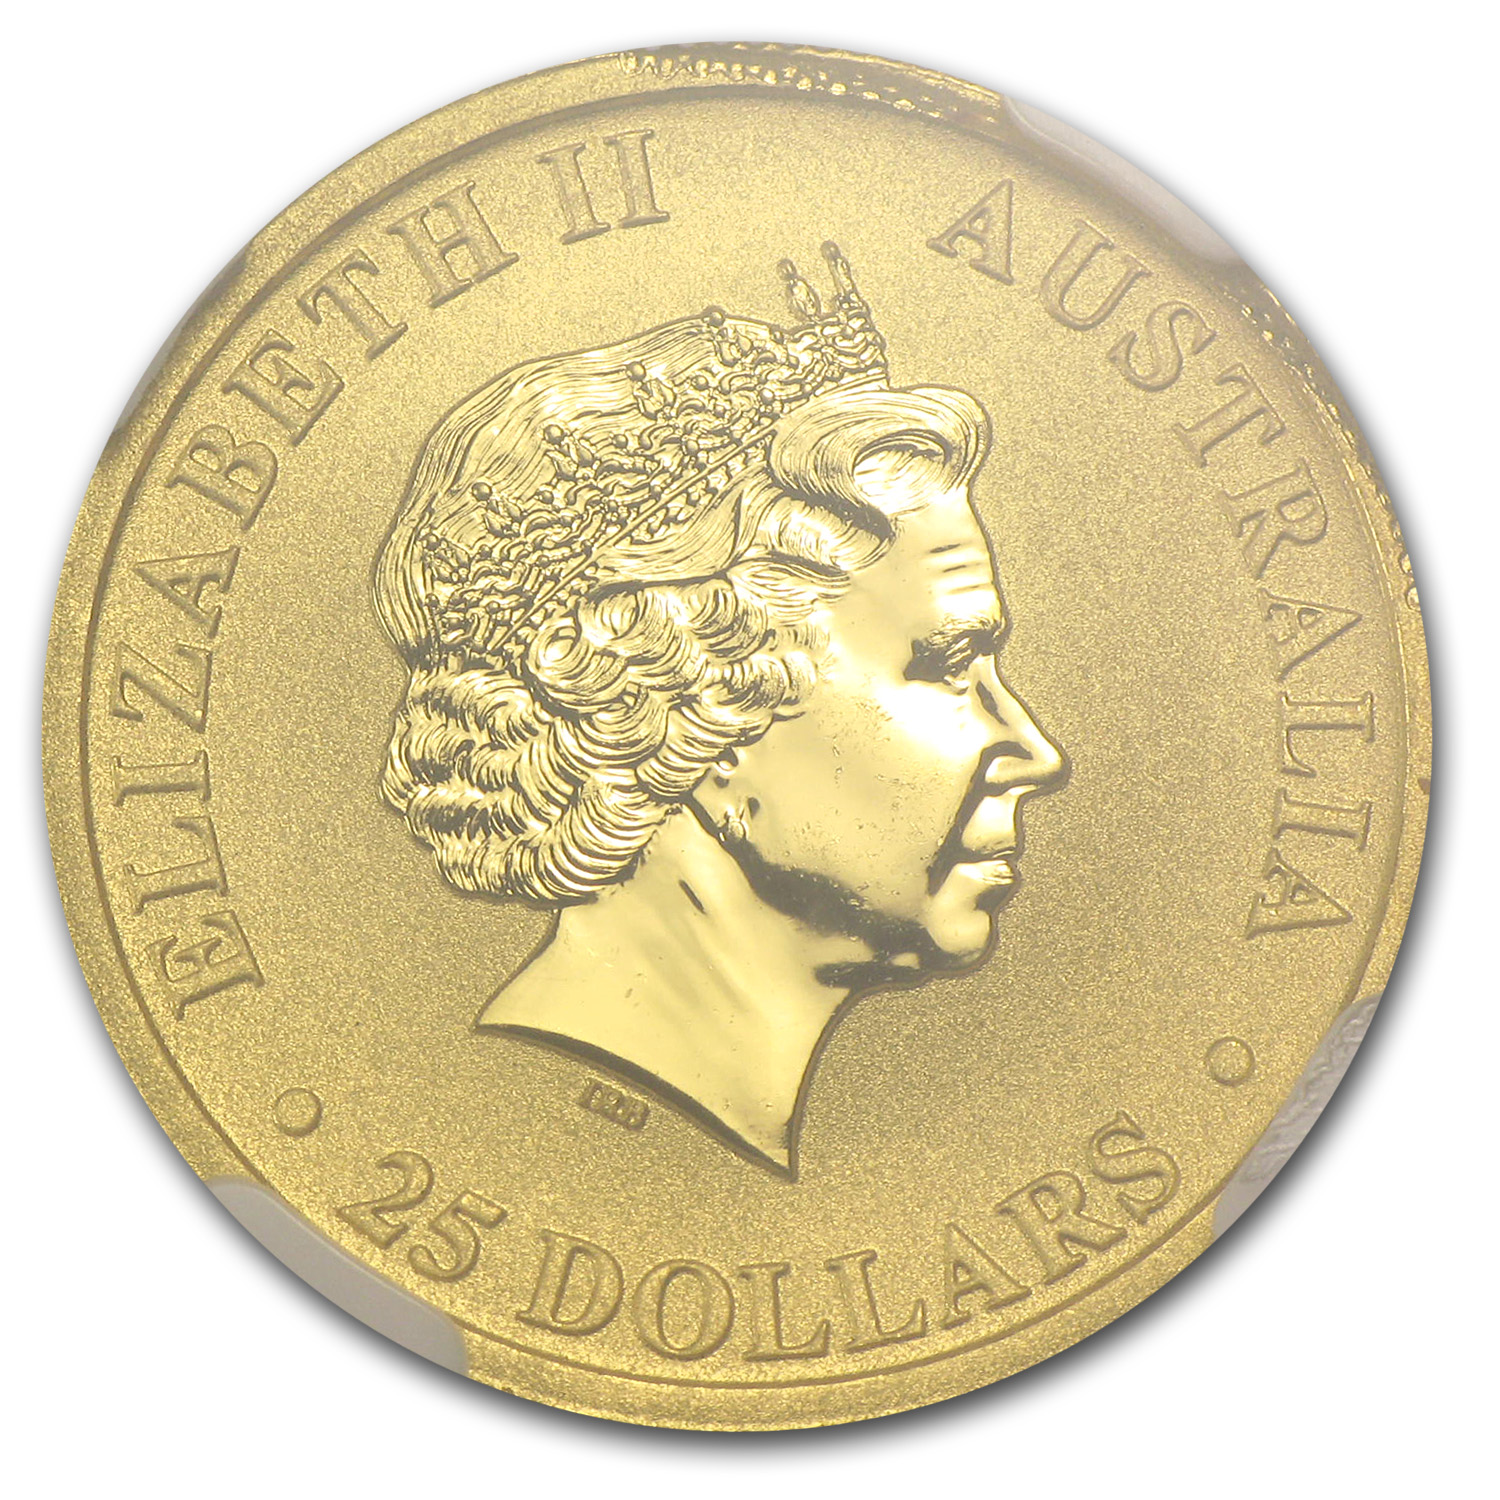 2014 Australia 1/4 oz Gold Kangaroo MS-67 NGC Mint Error